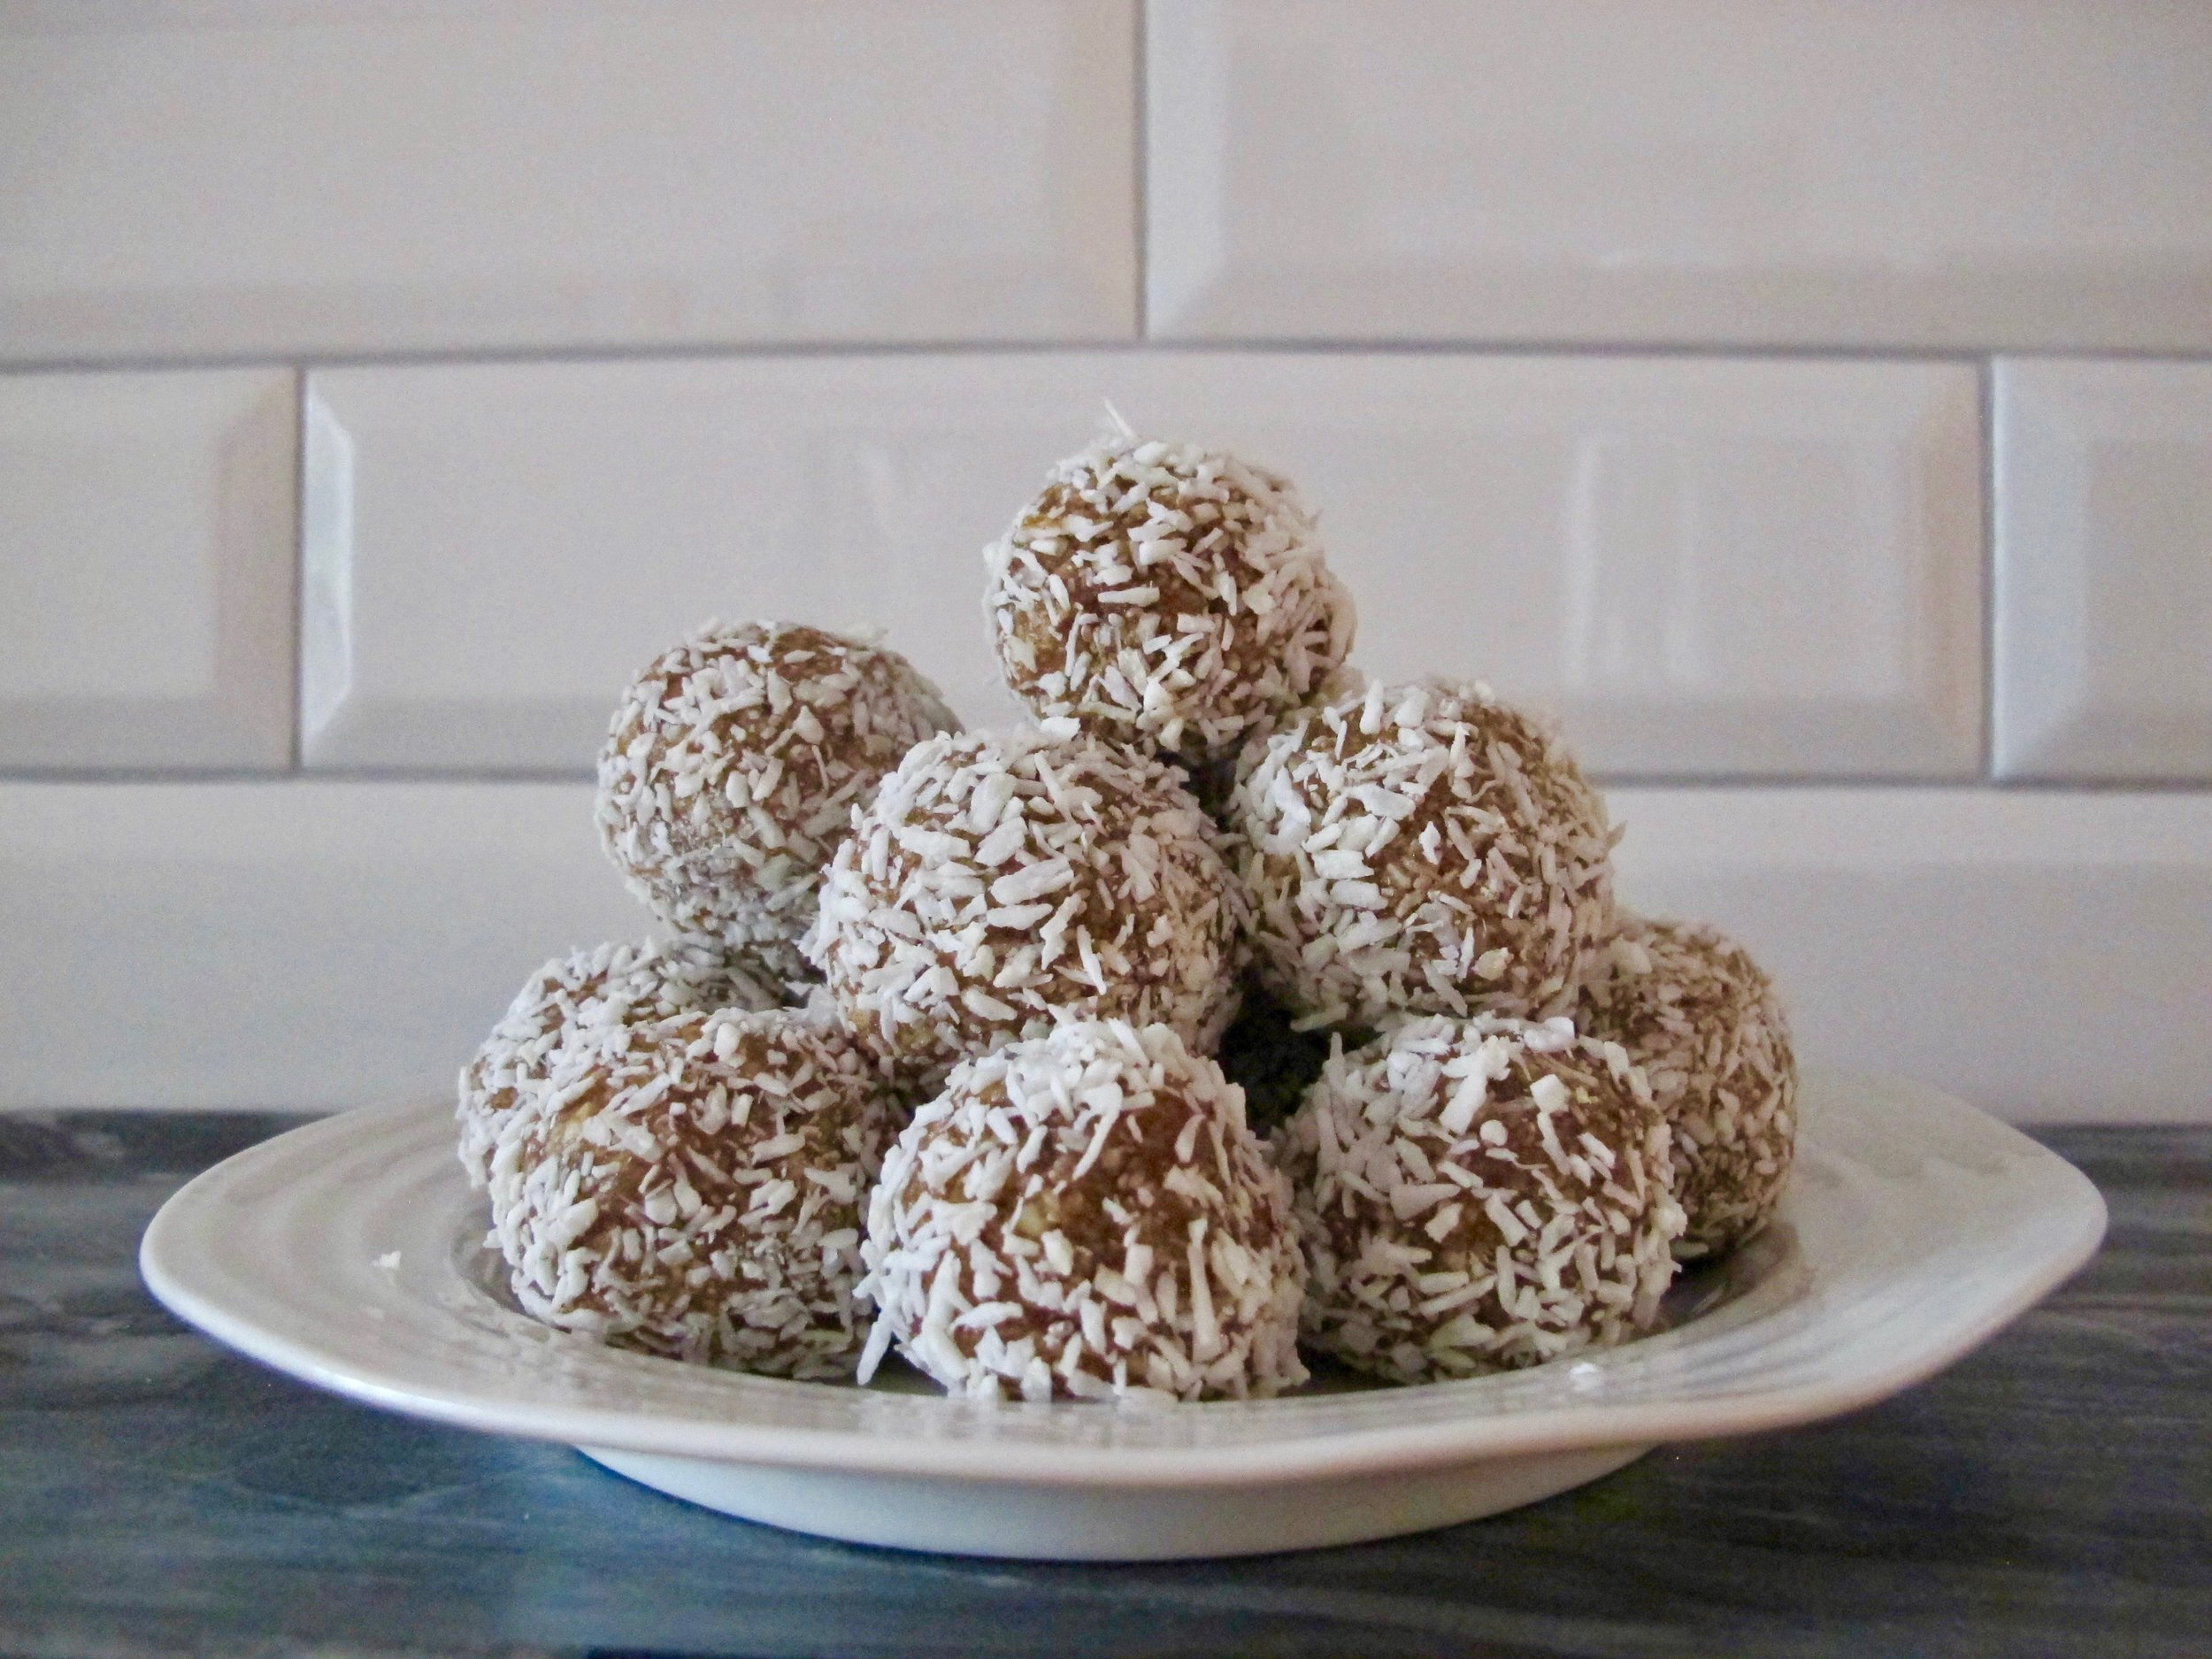 health food snob Larissa Dundon lemon cashew coconut balls